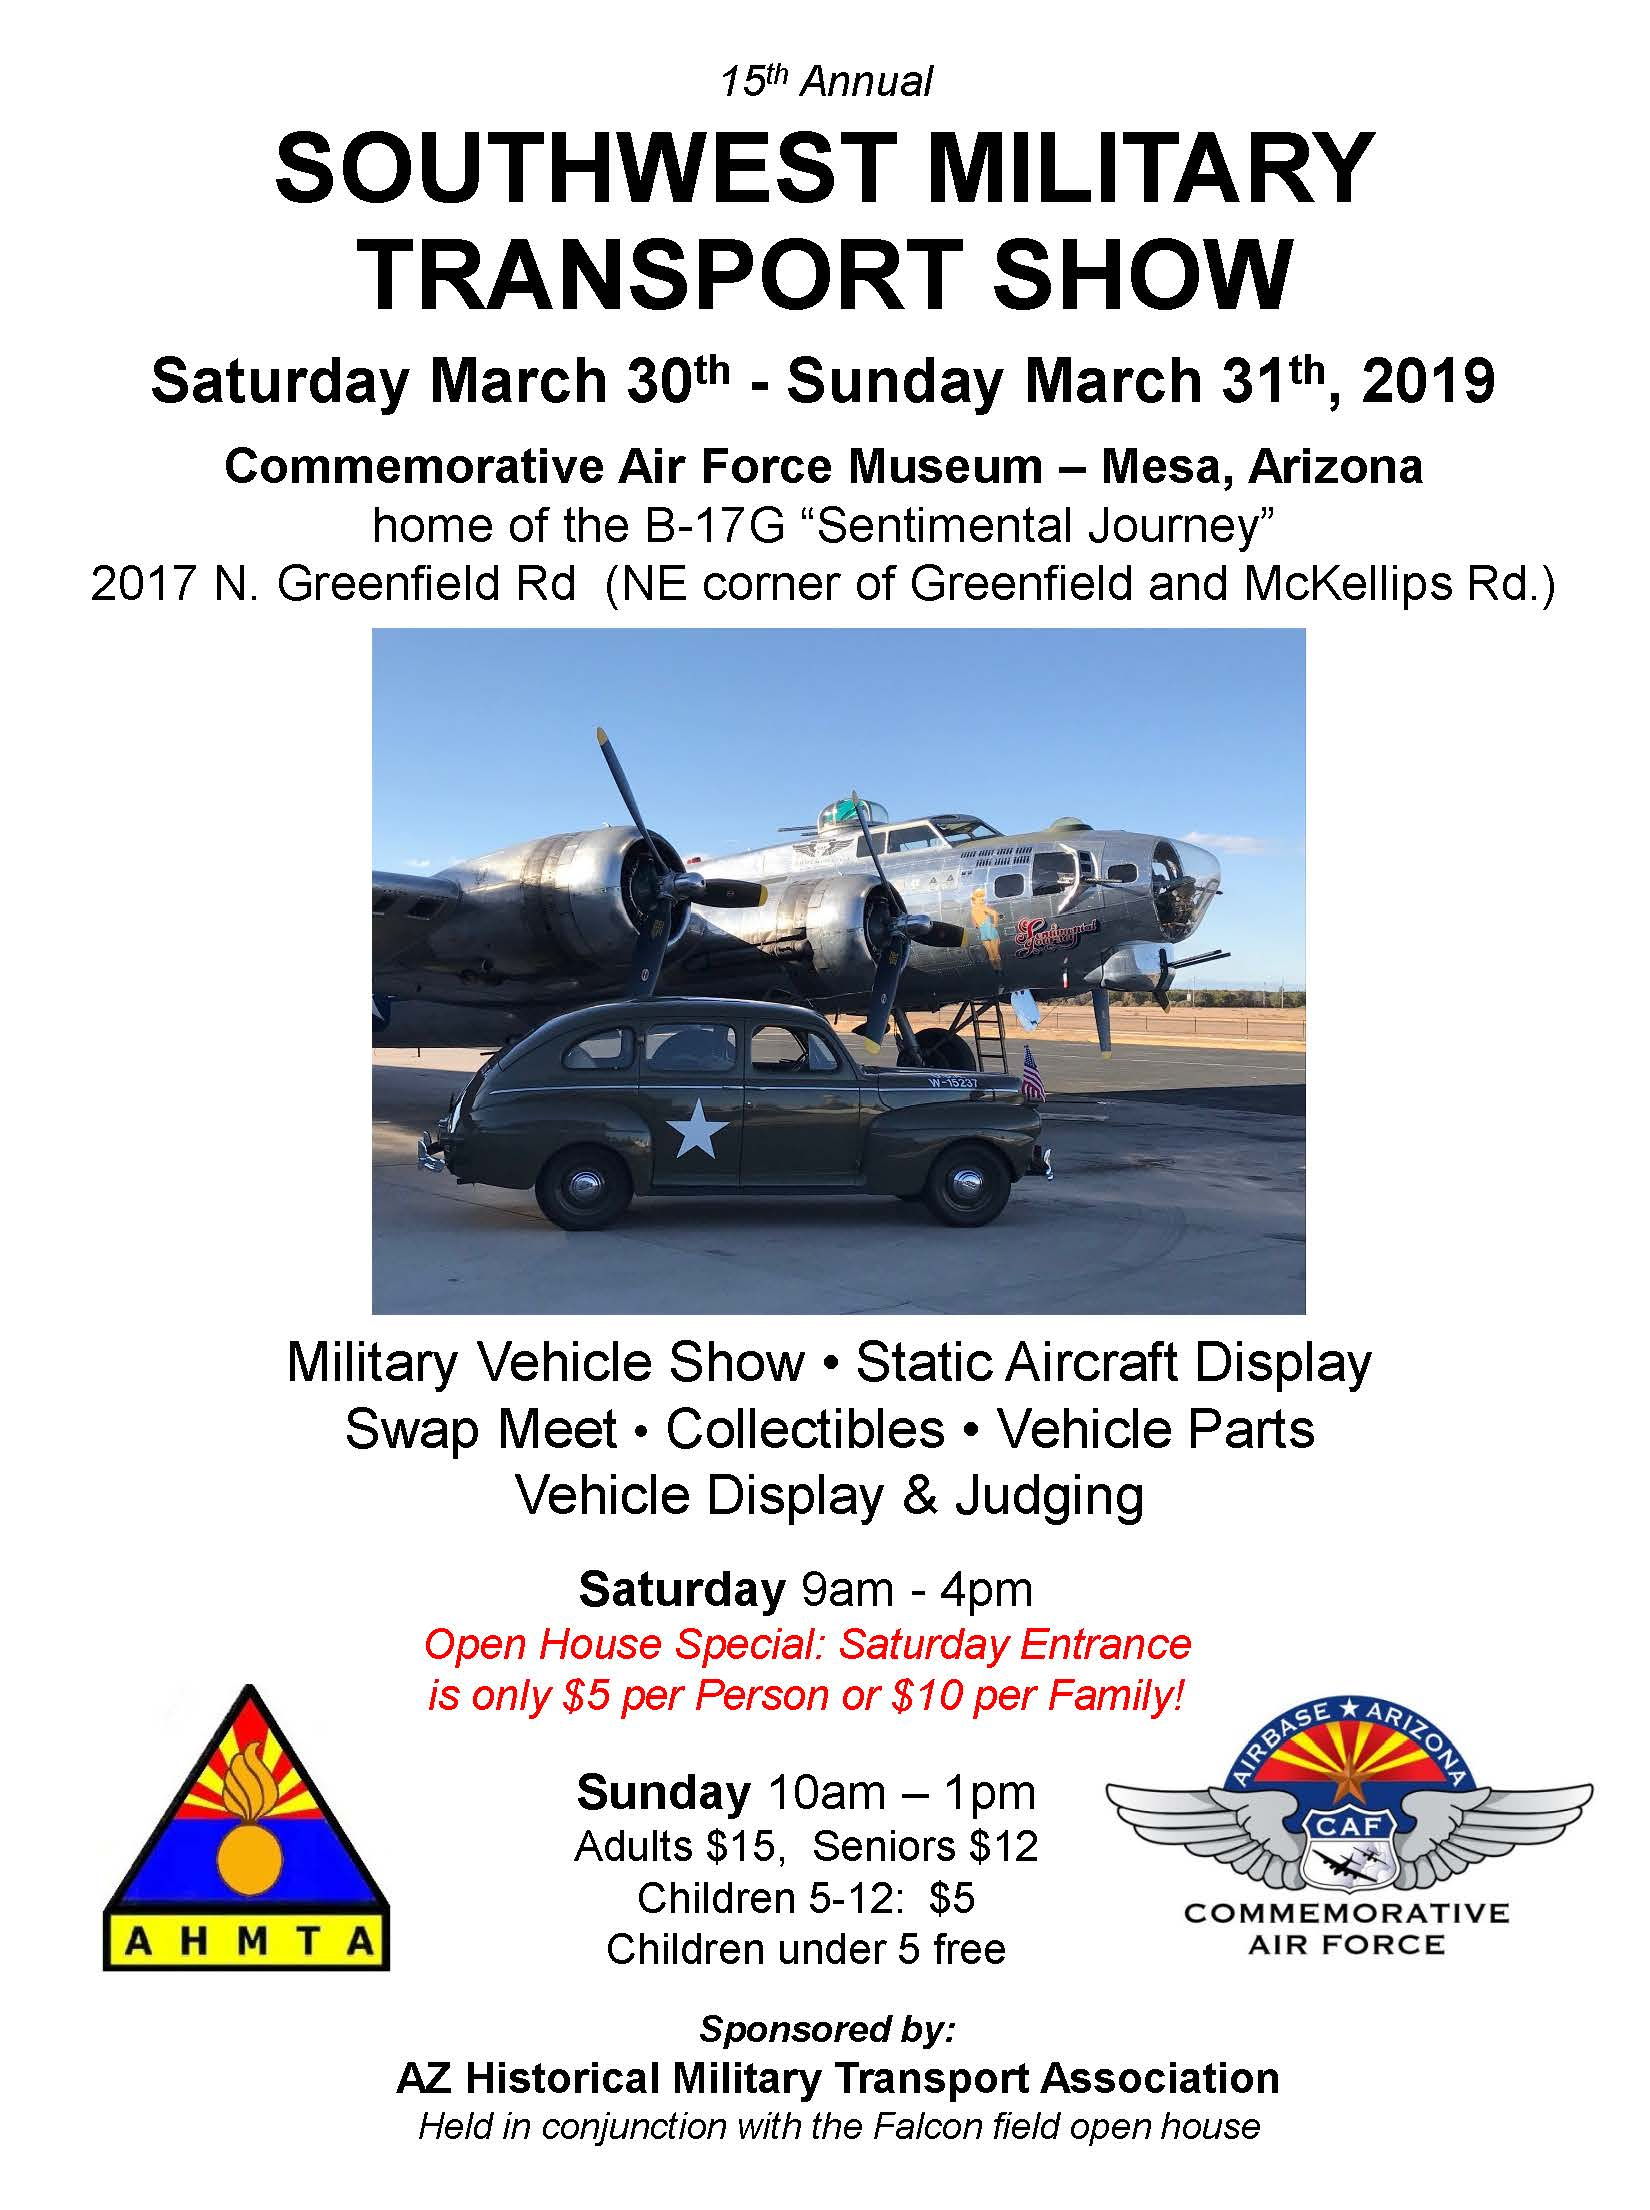 Southwest Military Transport Show Flyer 2019